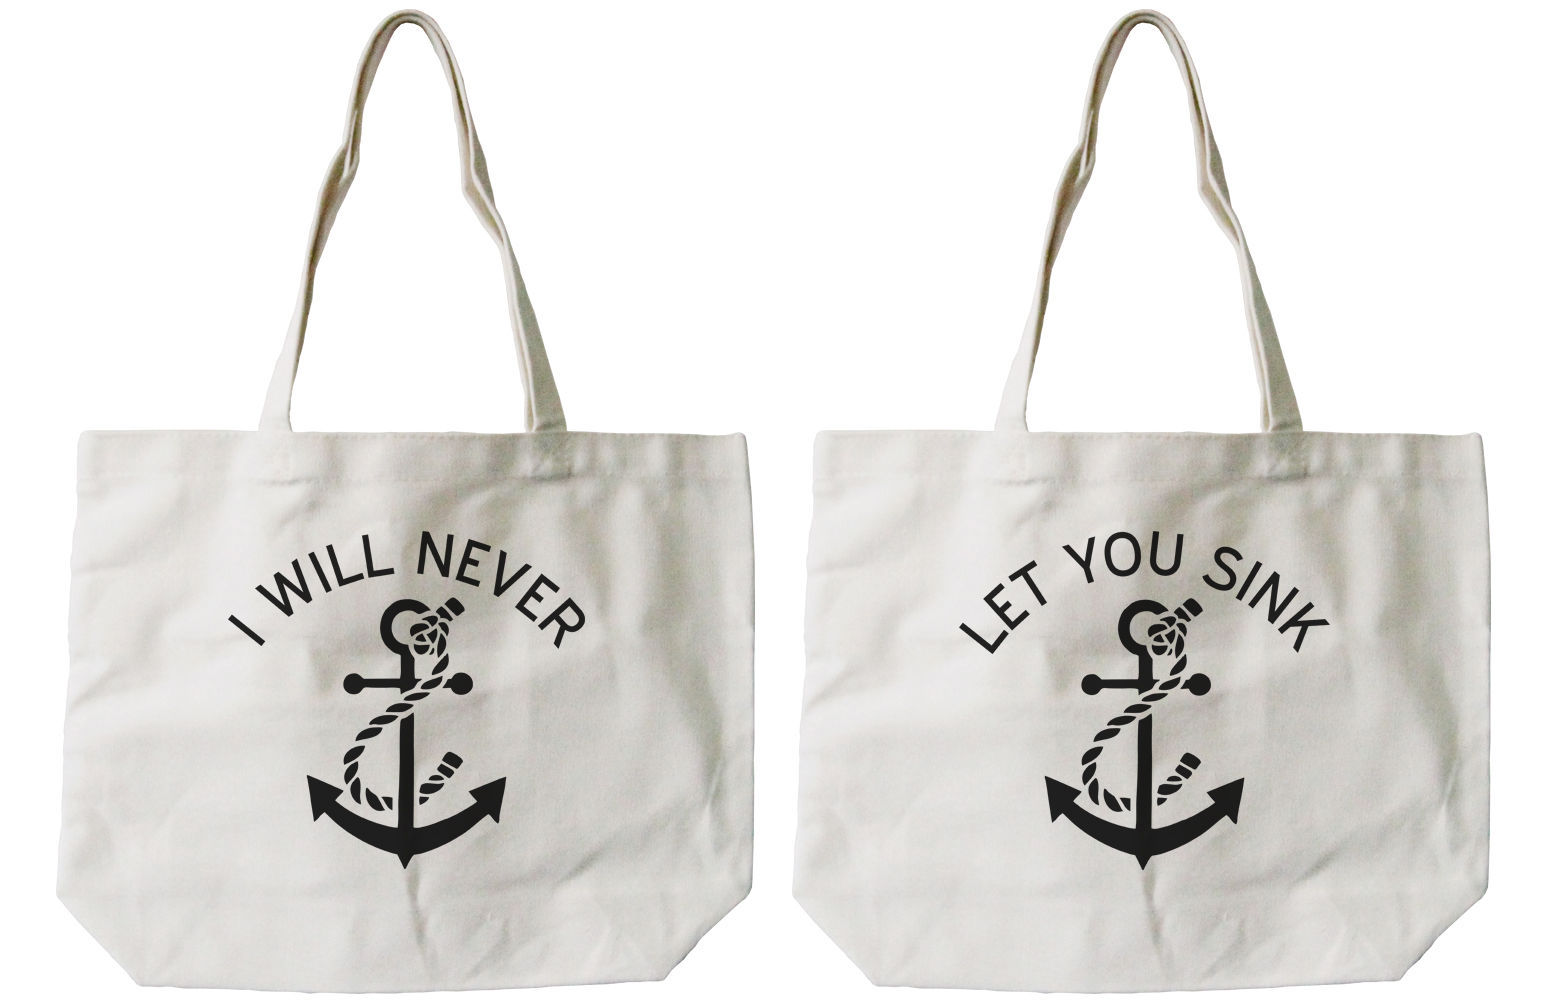 Best Friend Anchor Matching Cotton Canvas Tote Bags - Eco Bags, Book Bags